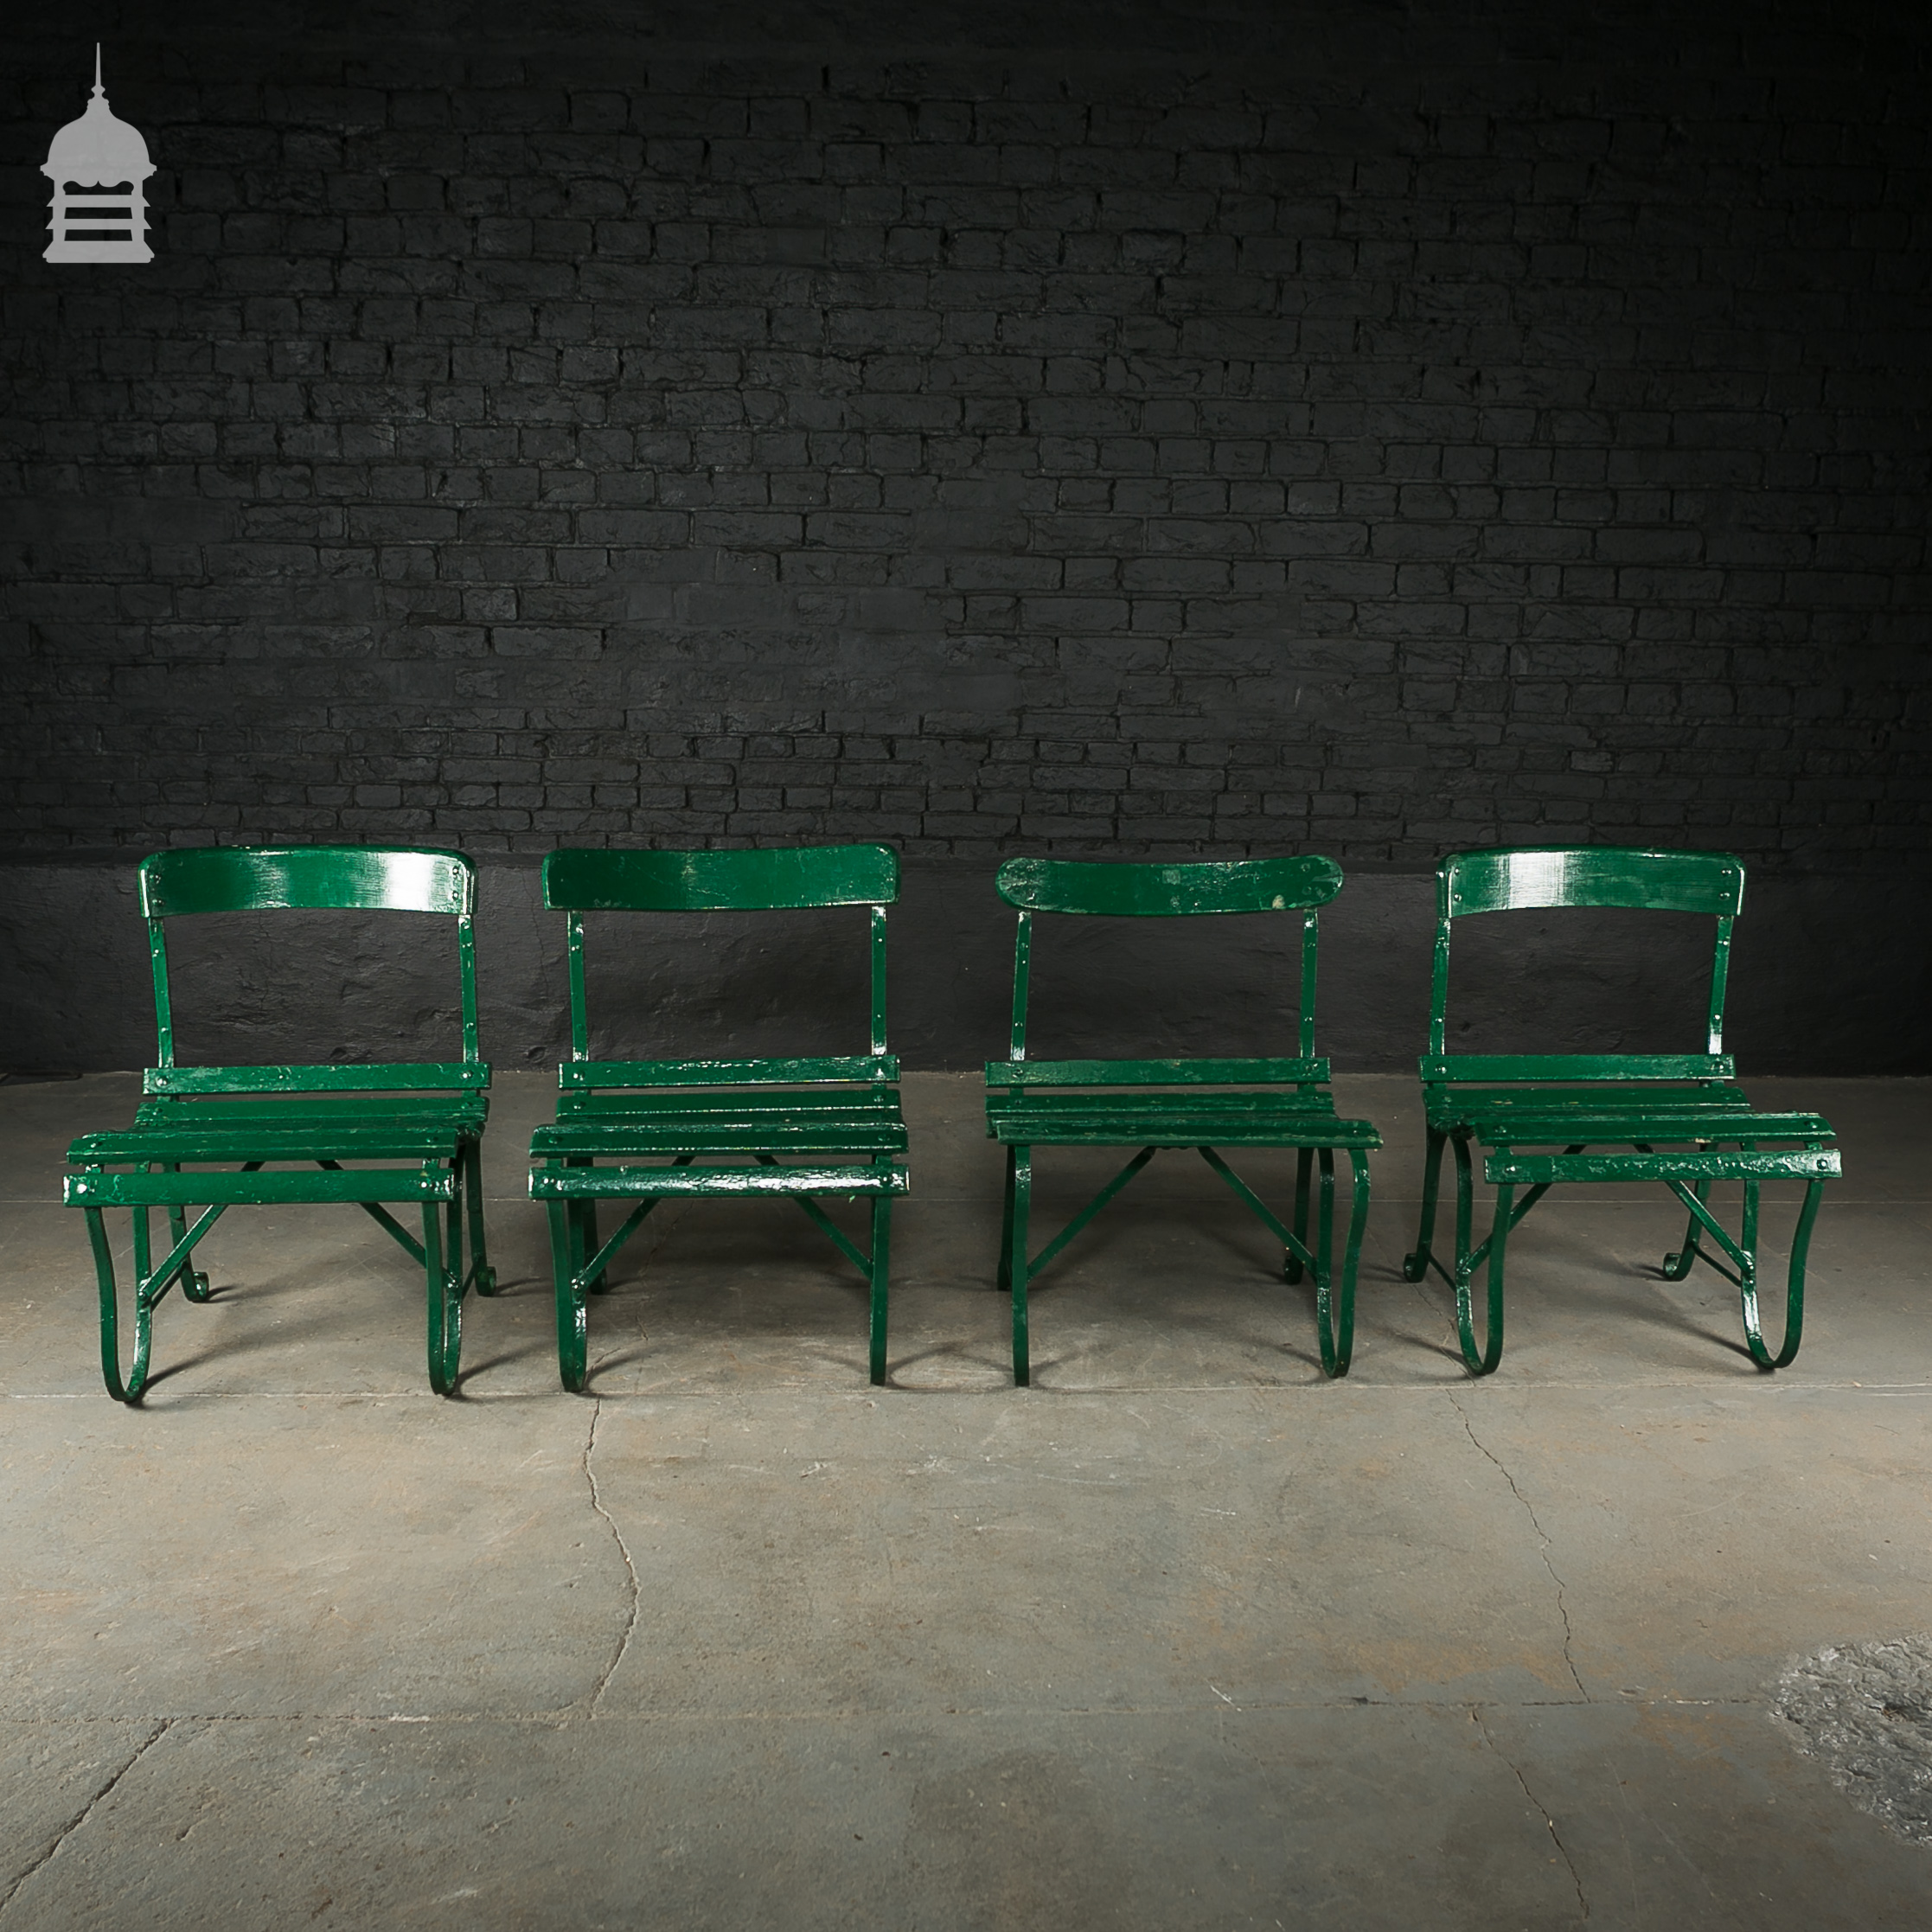 4 Wrought Iron Garden Chairs with Hardwood Slats